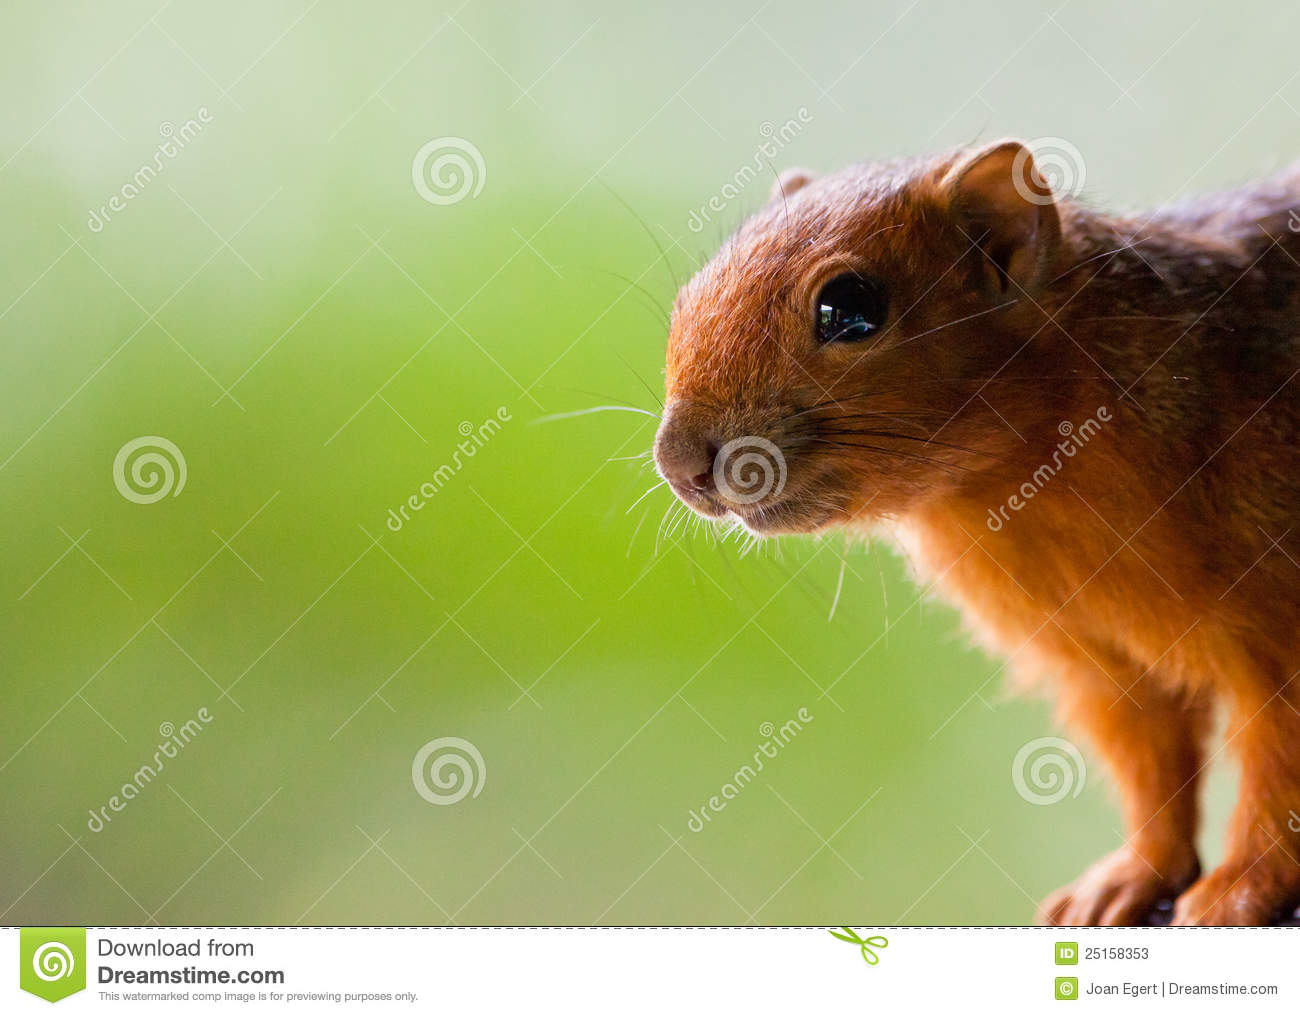 How to Choose Which Exotic Rodent to Own forecasting